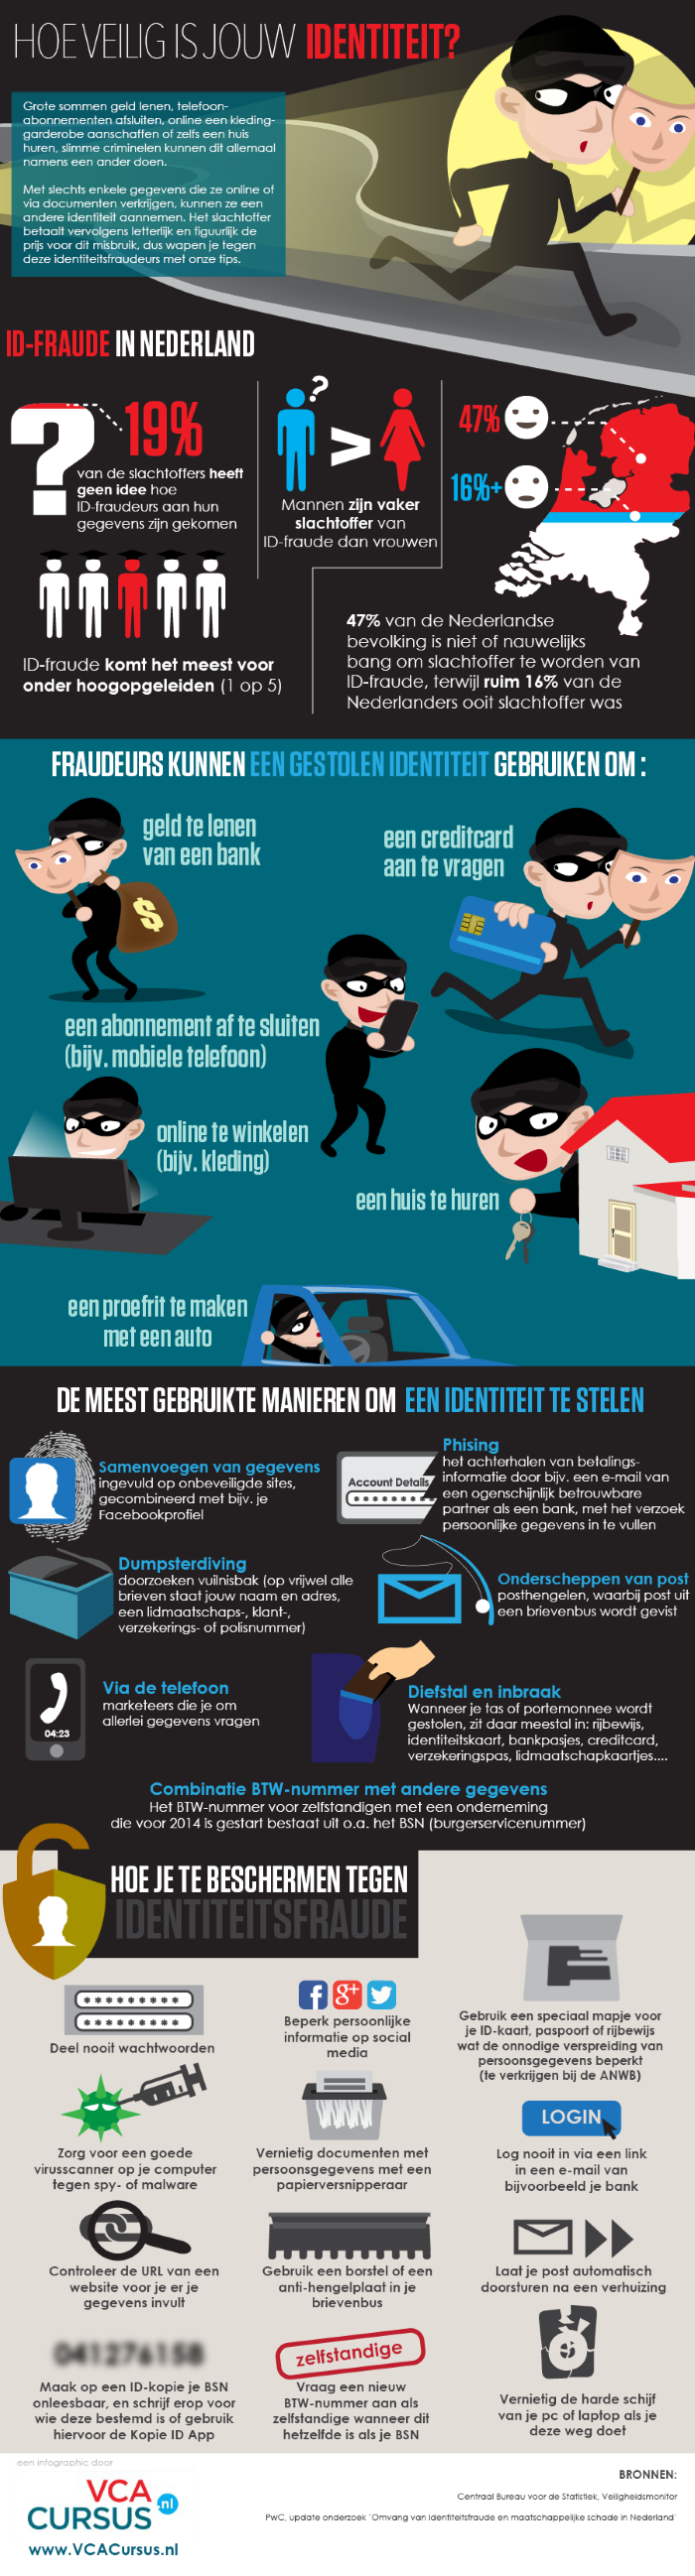 ID-fraude in Nederland